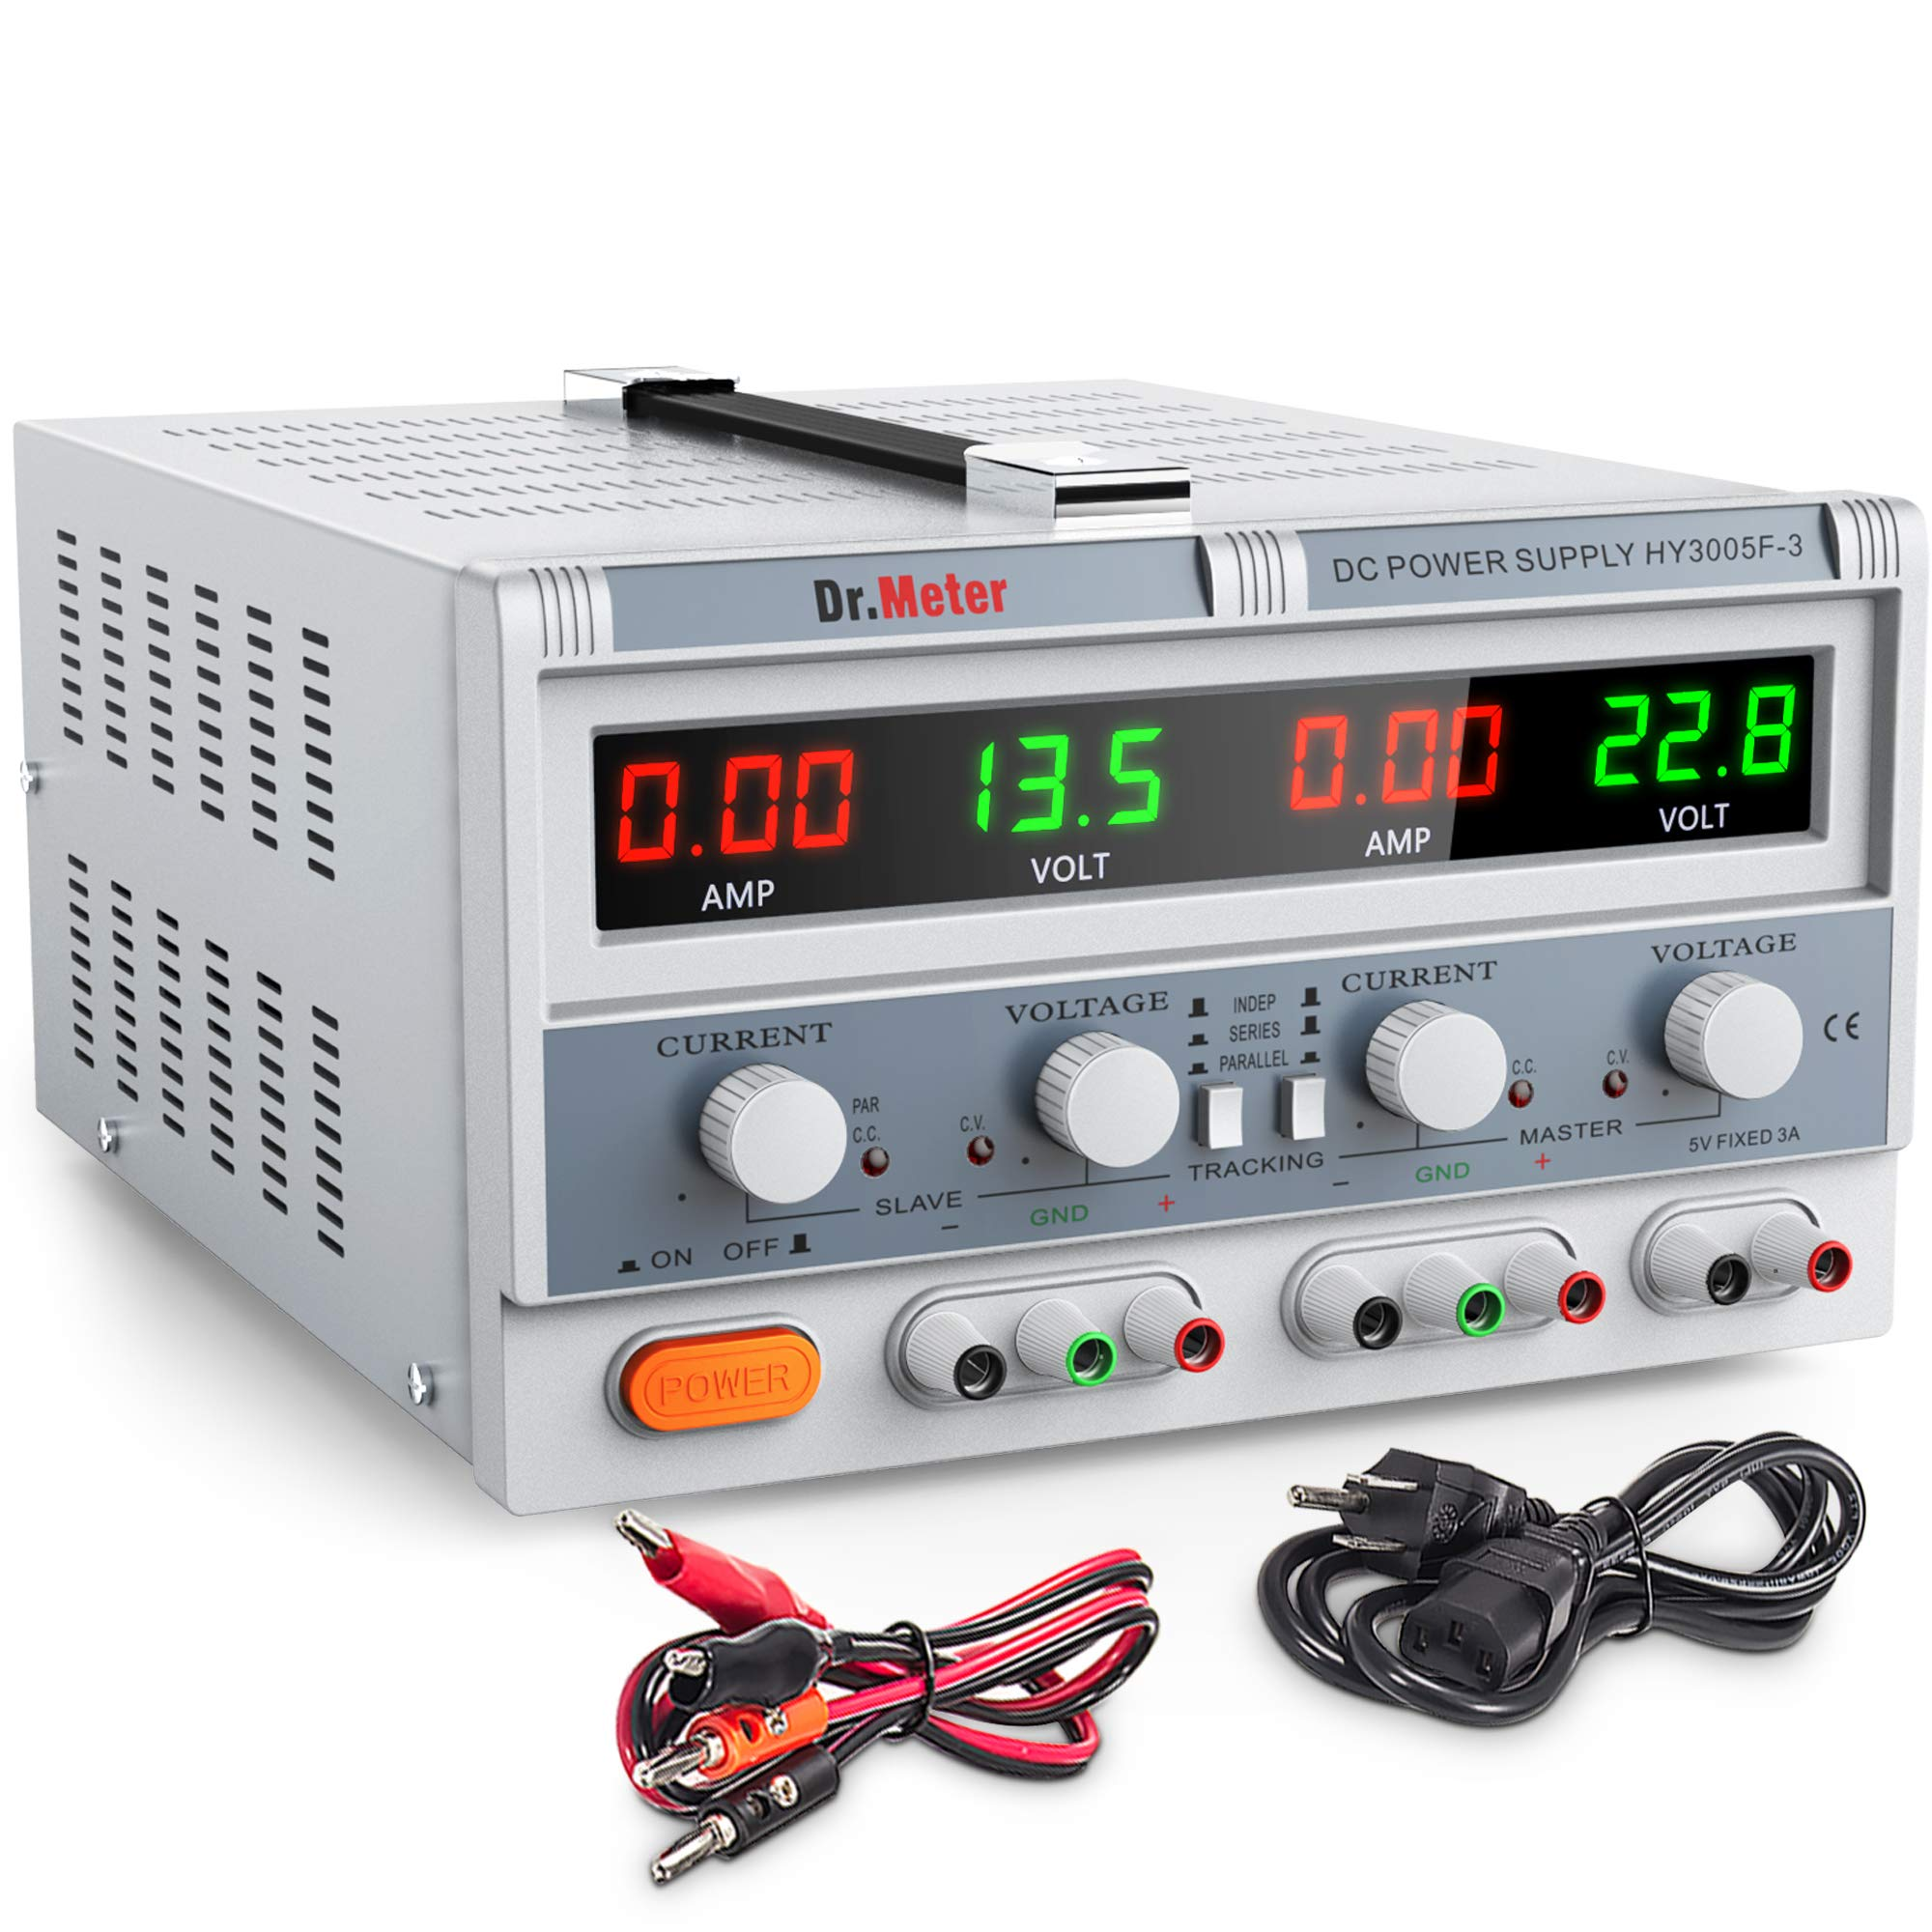 Best Rated In Lab Power Supplies Helpful Customer Reviews We Can Configure Them As A Lowvoltage Bipolar Supply Drmeter Hy3005f 3 Triple Linear Dc 30v 5 Amp